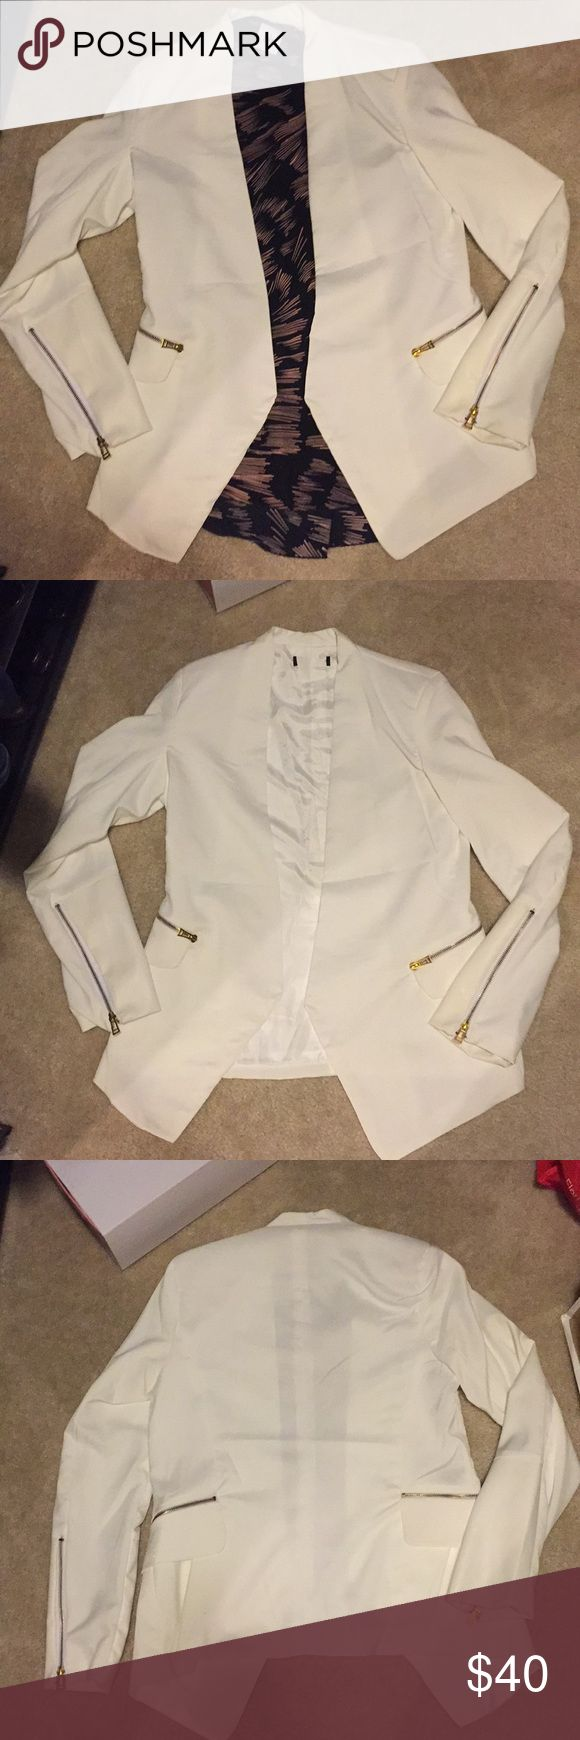 🆕🧥NWOT White Blazer Jacket This pretty white blazer was given to me as a gift and has never been worn. It's way too pretty to continue sitting in my closet. I just tend to wear black blazers to work.   When I received it, it didn't have a tag on it, but it's a medium. 🌸 Shi Long Fashion Jackets & Coats Blazers